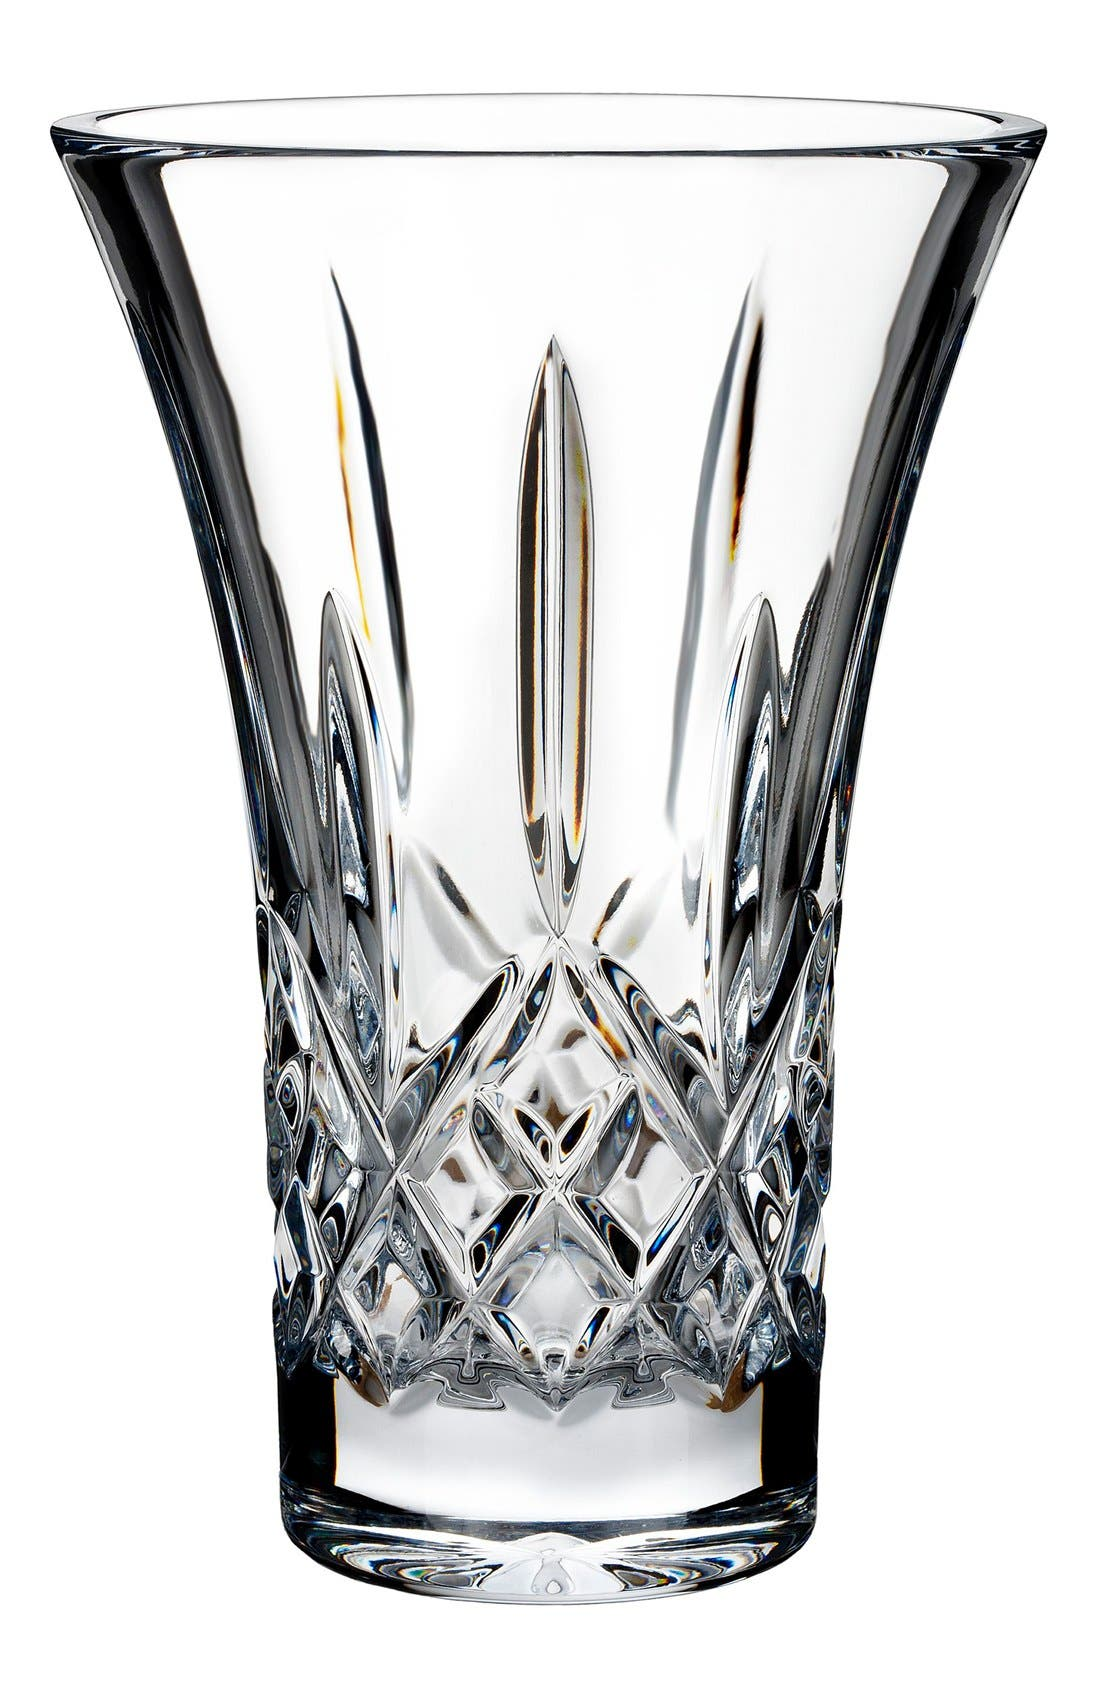 Alternate Image 1 Selected - Waterford 'Lismore' Lead Crystal Flared Vase